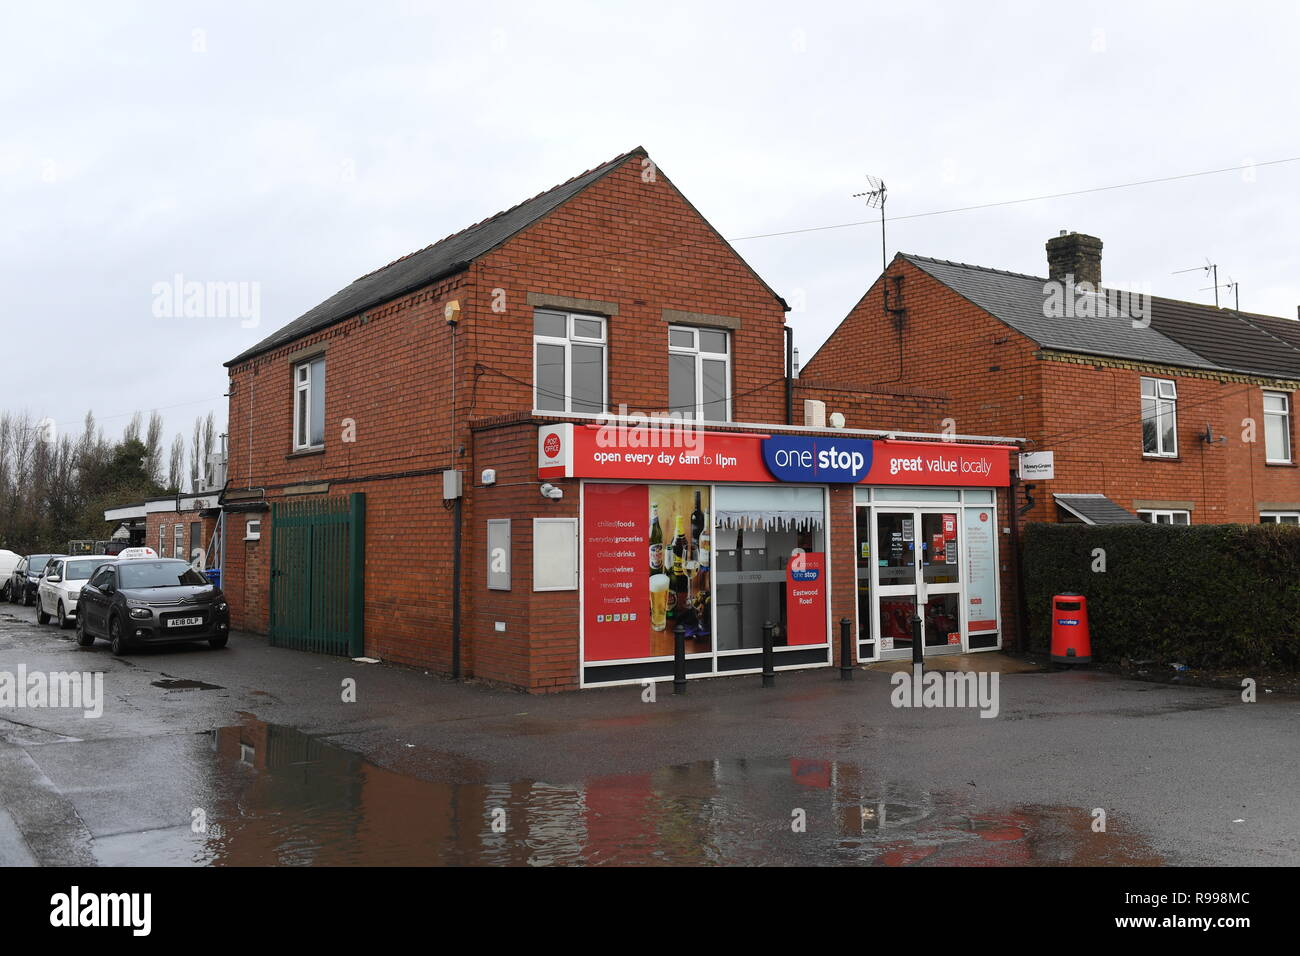 Eastwood Road Post Office in Boston, Lincolnshire, where Andrew Clark, who won £76 million on the EuroMillions lottery, bought his winning ticket. - Stock Image